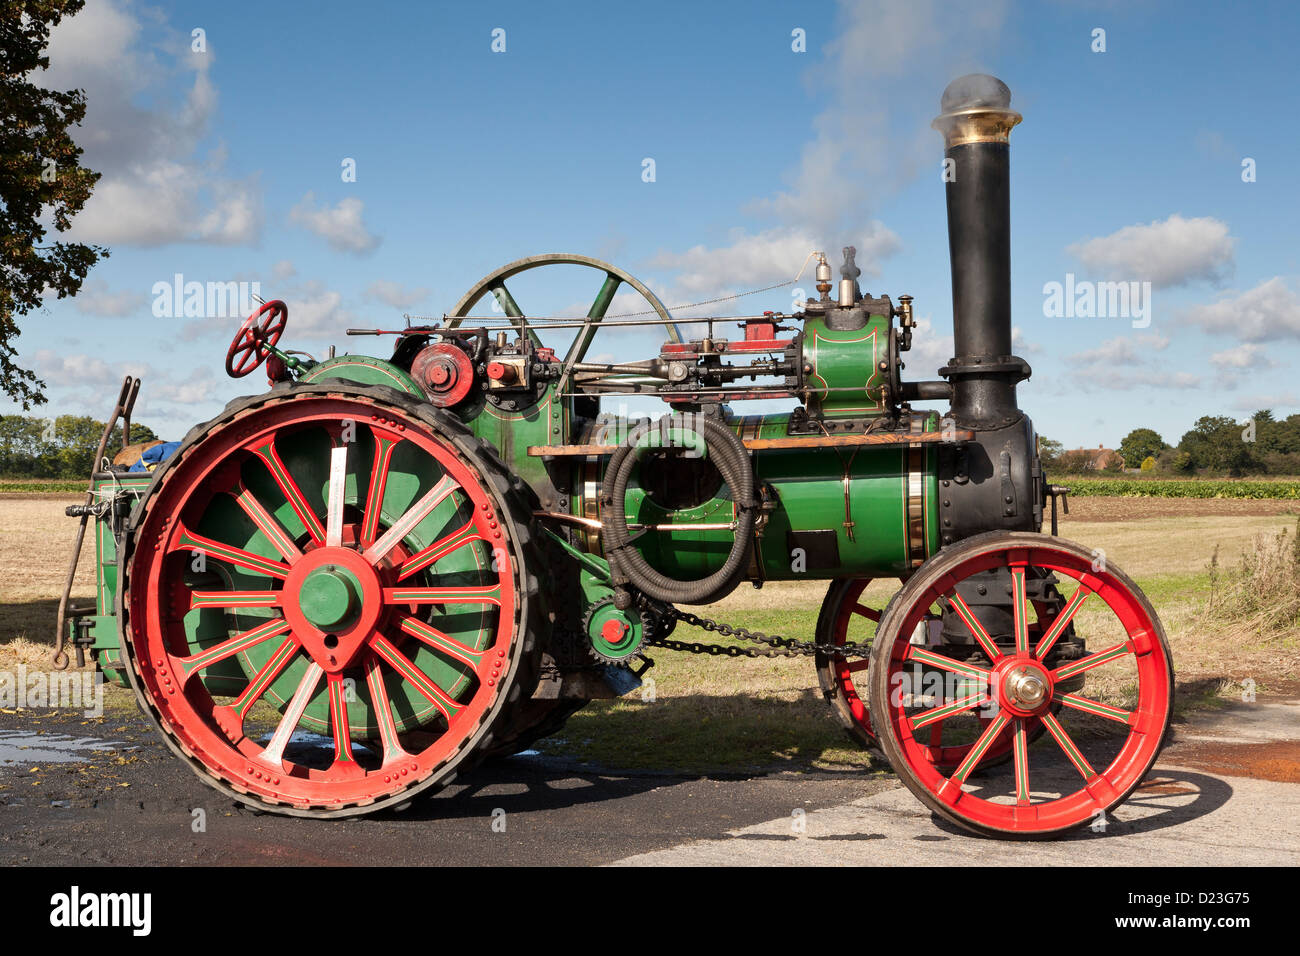 A steam engine - Stock Image